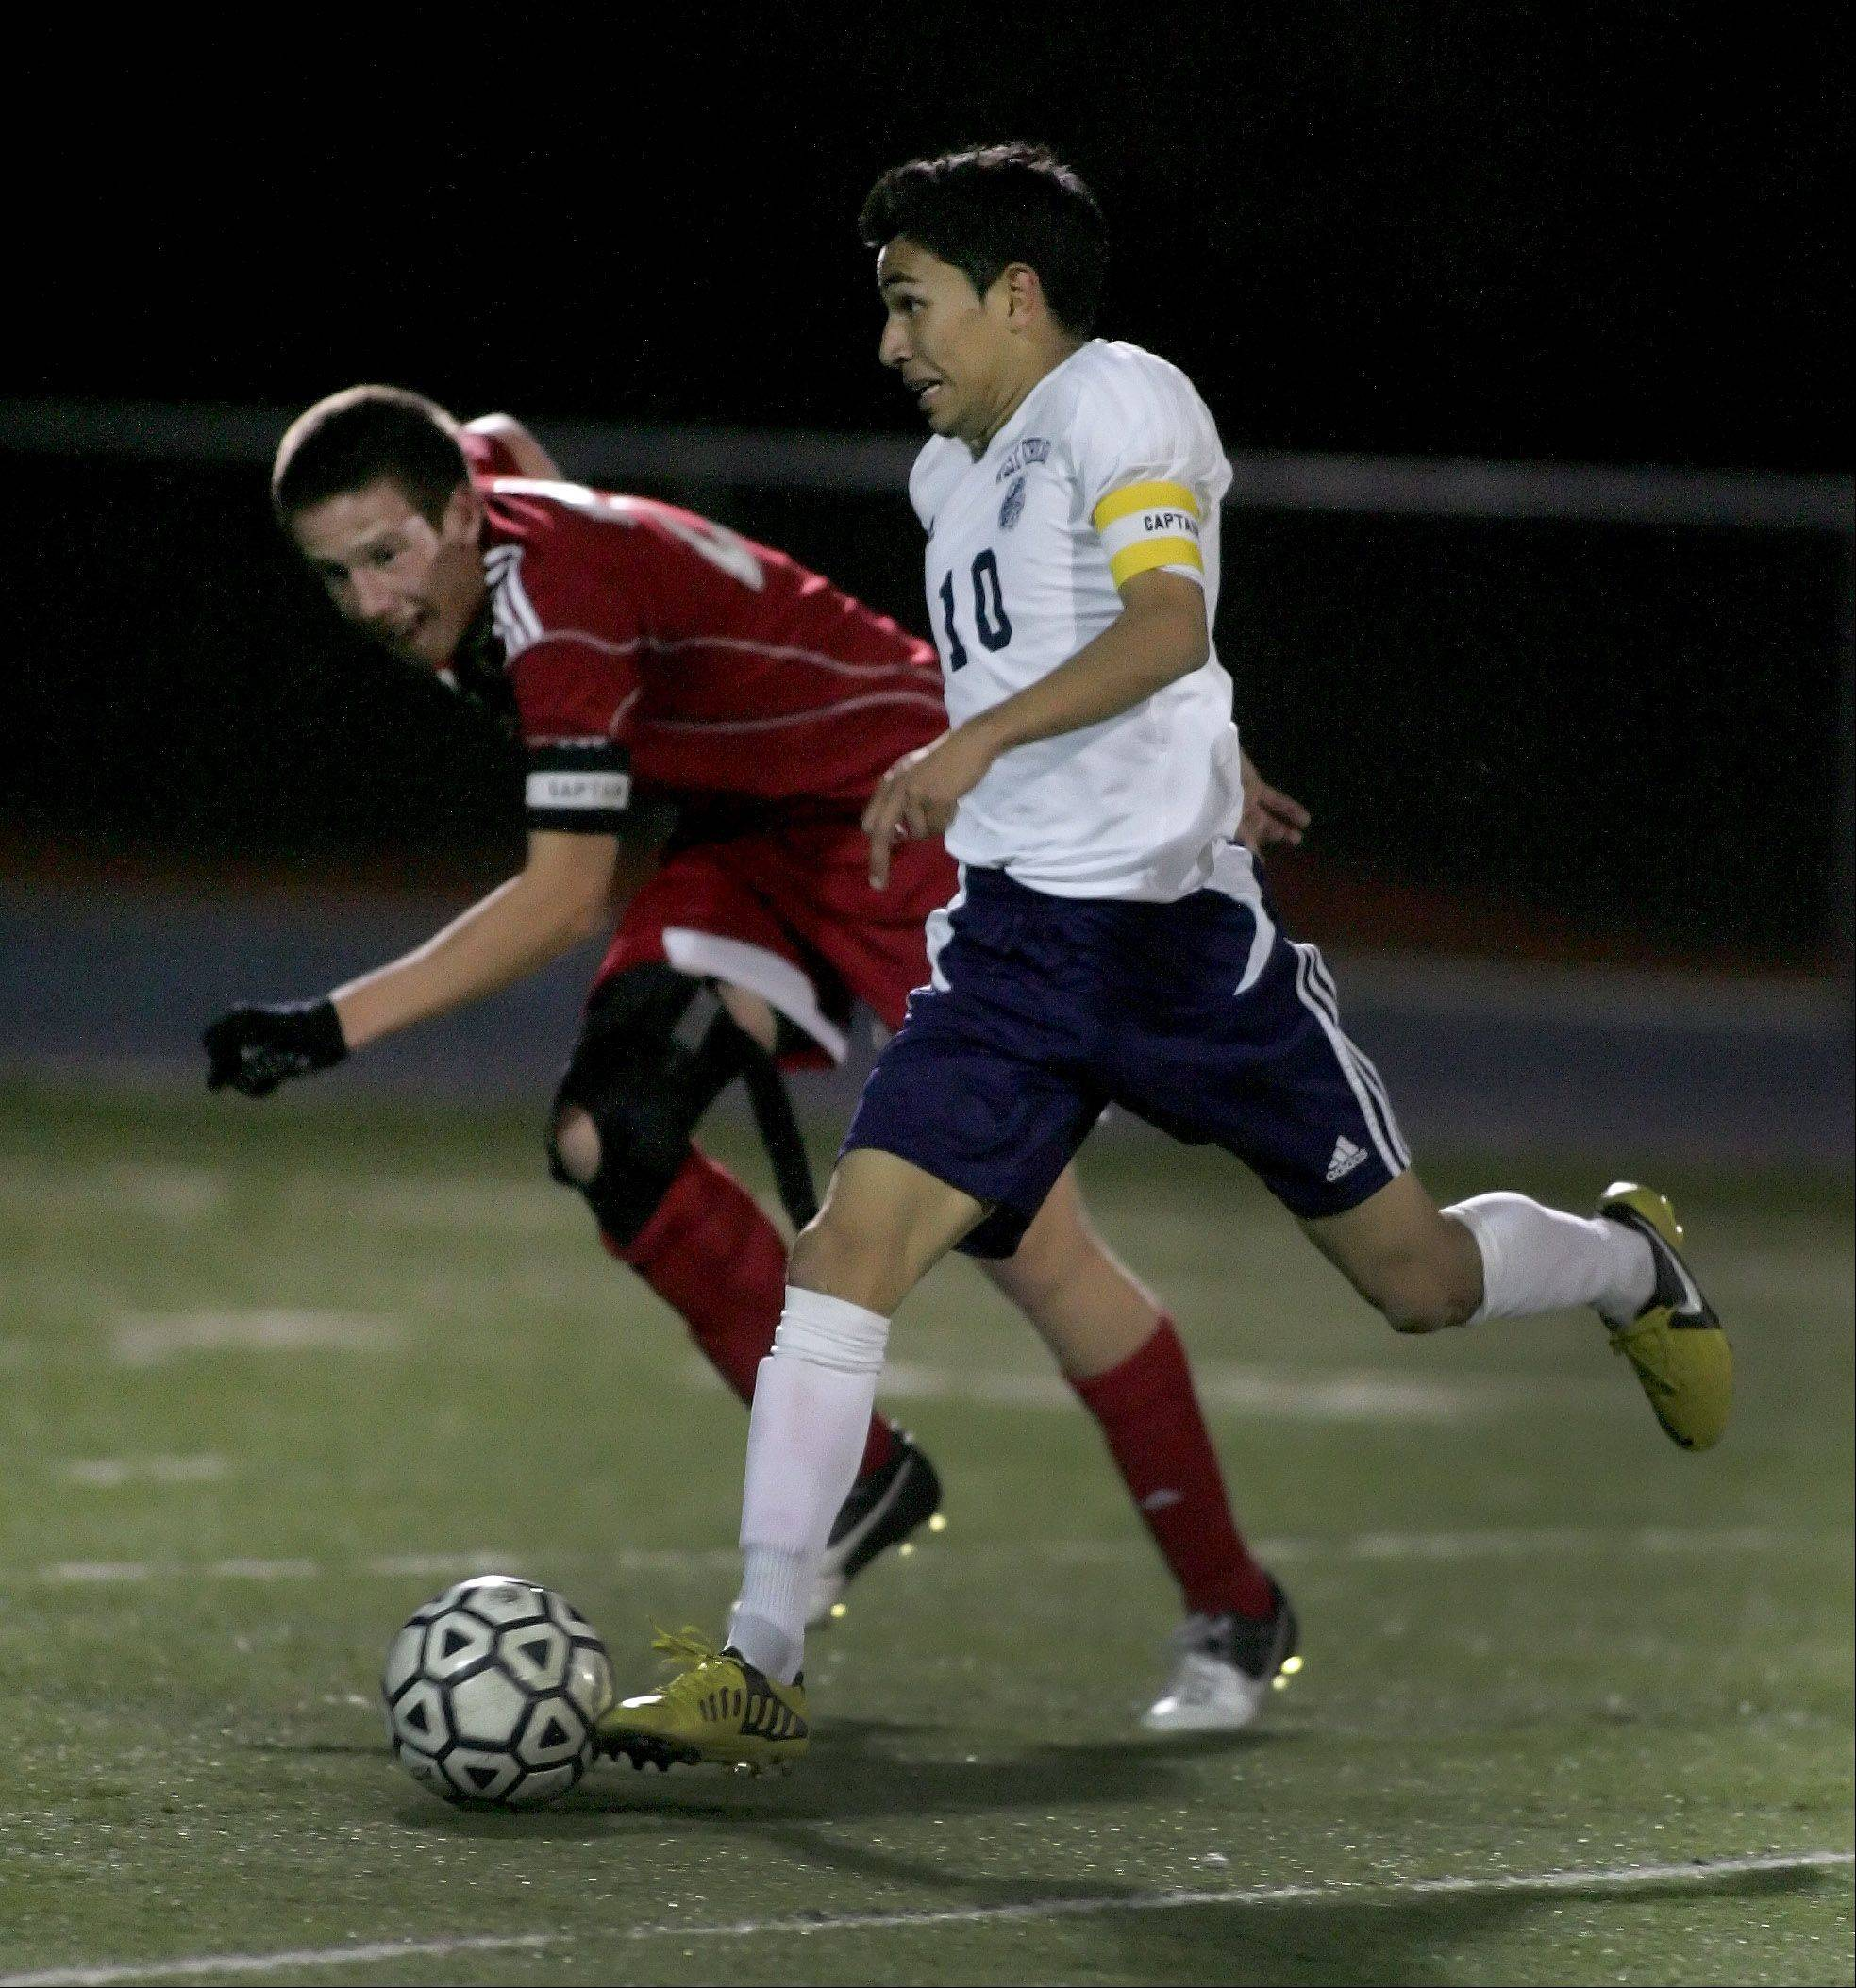 Diego Munoz of West Chicago moves the ball down the field and past Jack Patrick of Naperville Central in boys soccer action on Tuesday.